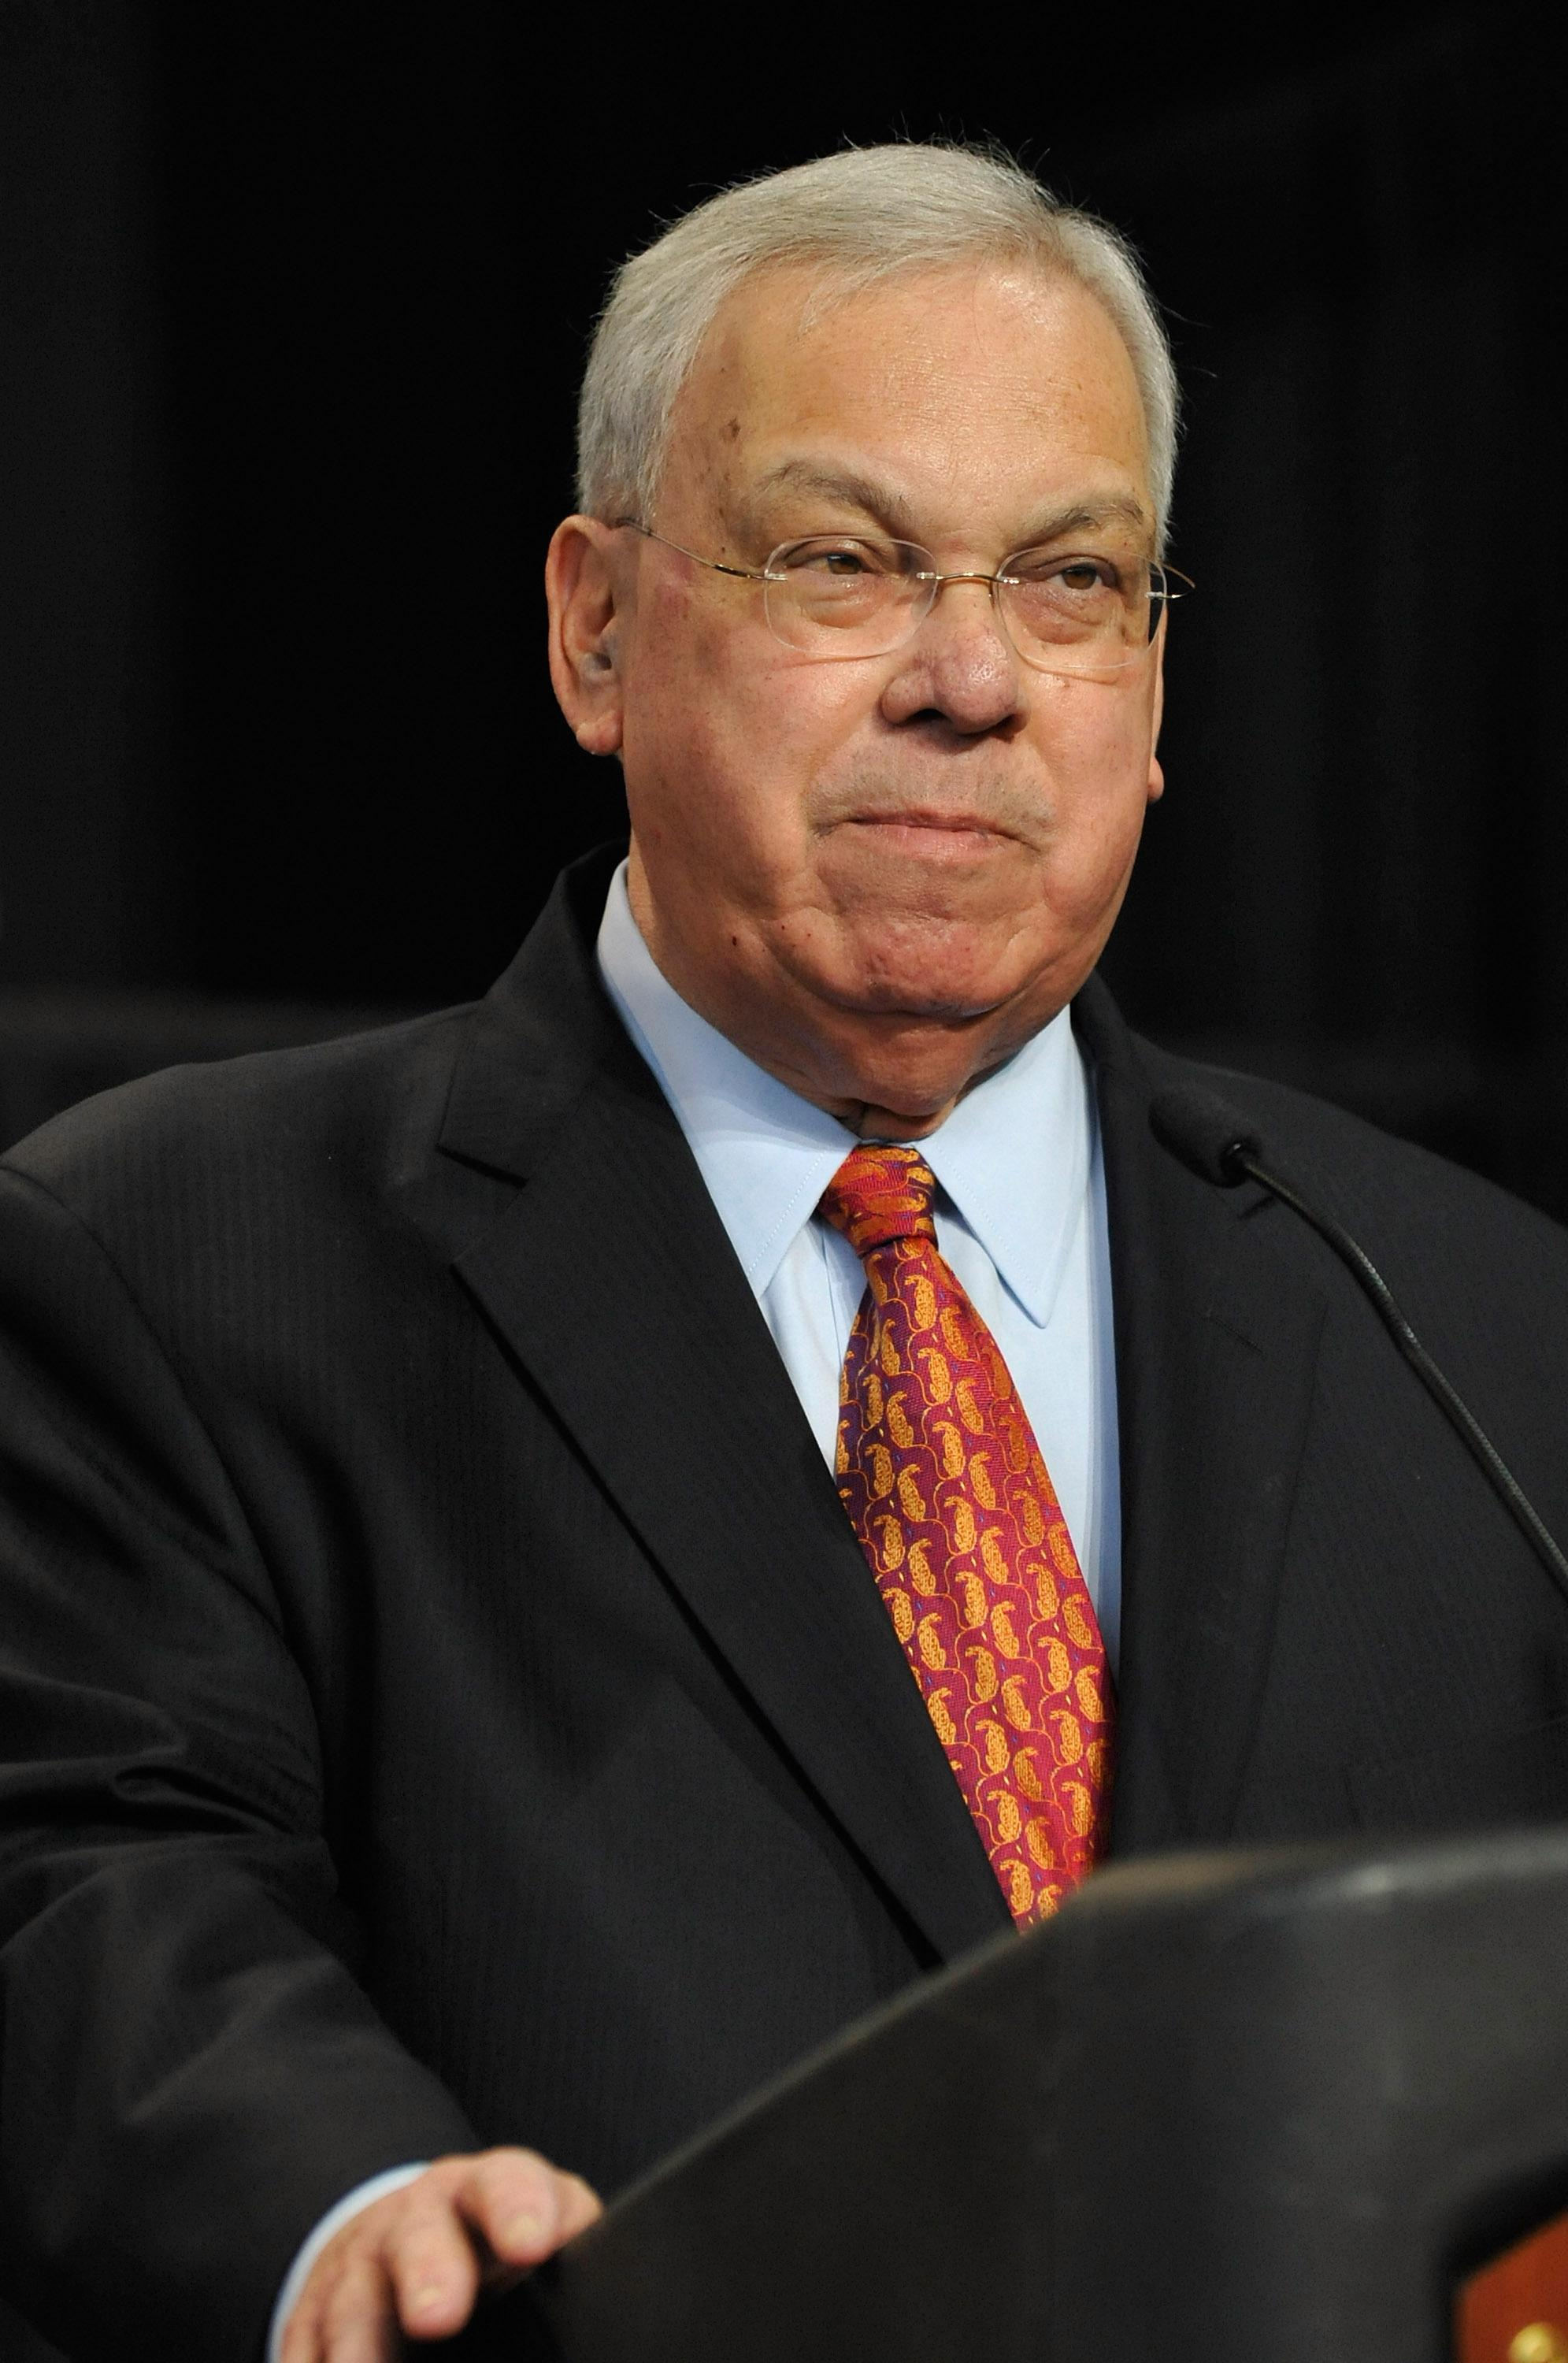 Image: FILE: Boston Mayor Menino Not To Seek Sixth Term